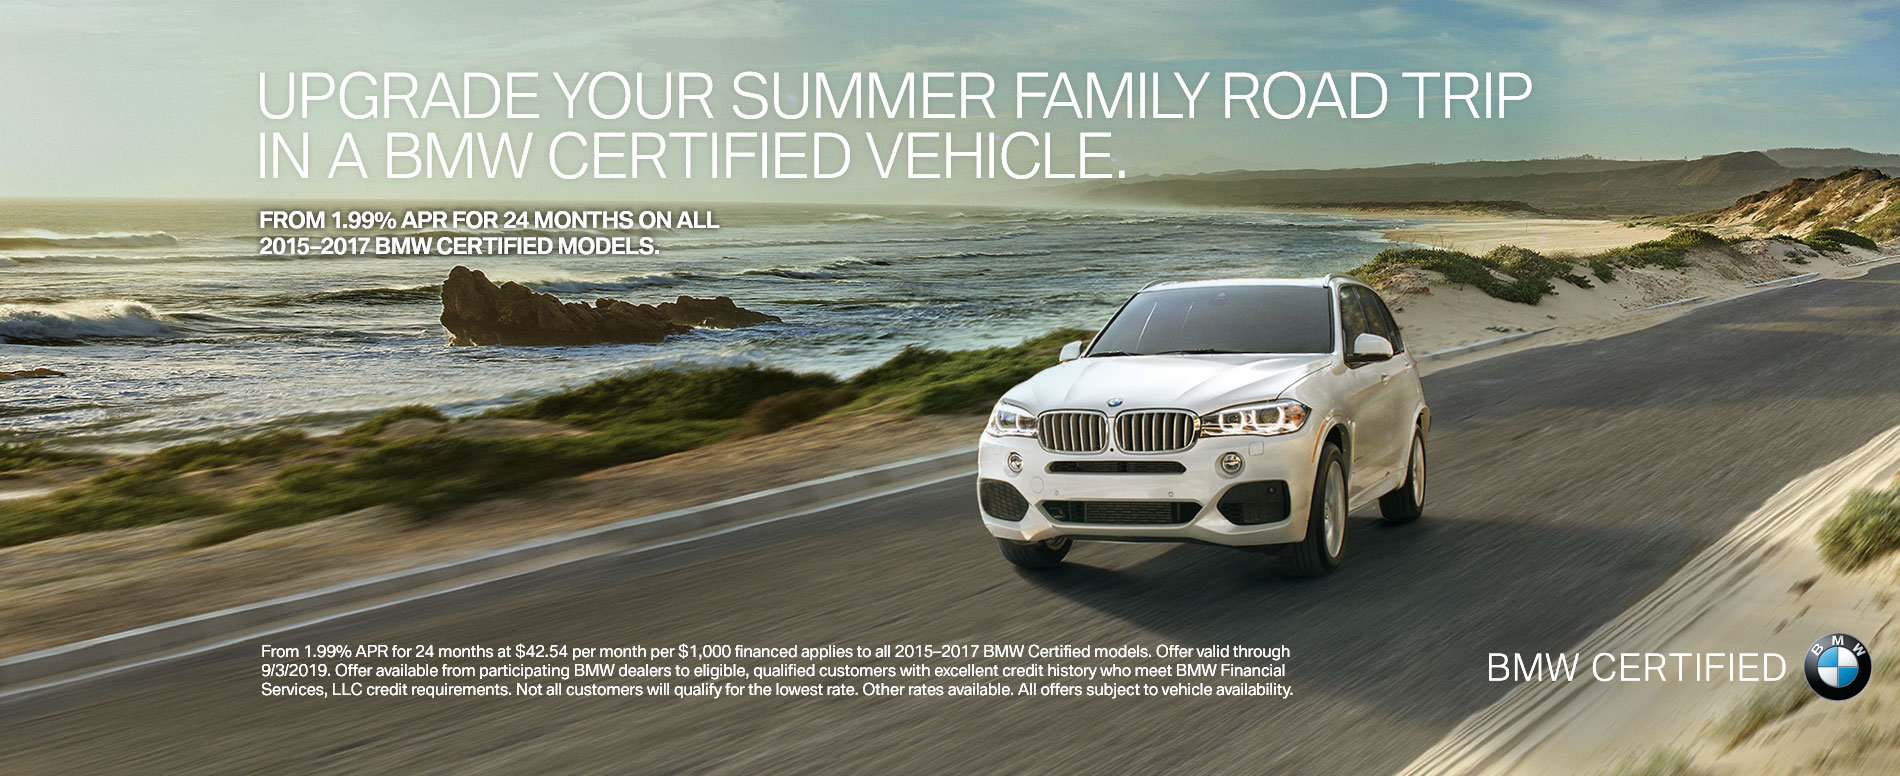 Bmw Dealer Near Me >> New Used Bmw Car Dealer Chino Hills Corona Upland And Rancho